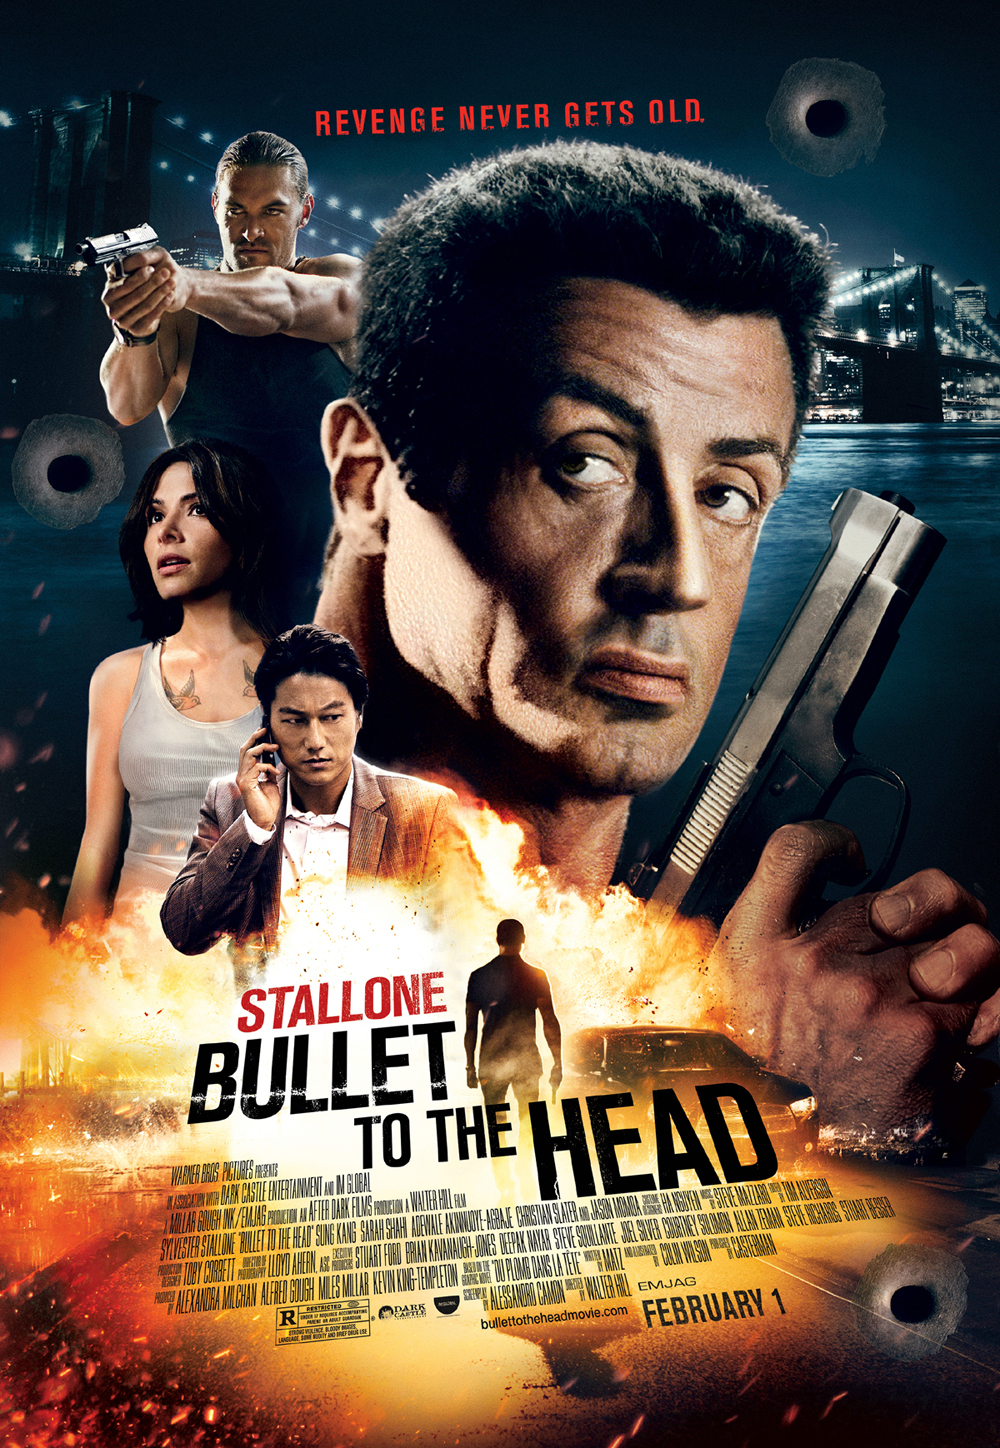 Title: Bullet to the Head Director: Walter Hill Writers: Walter Hill & Alessandro Camon (Based on the story by Alexis...